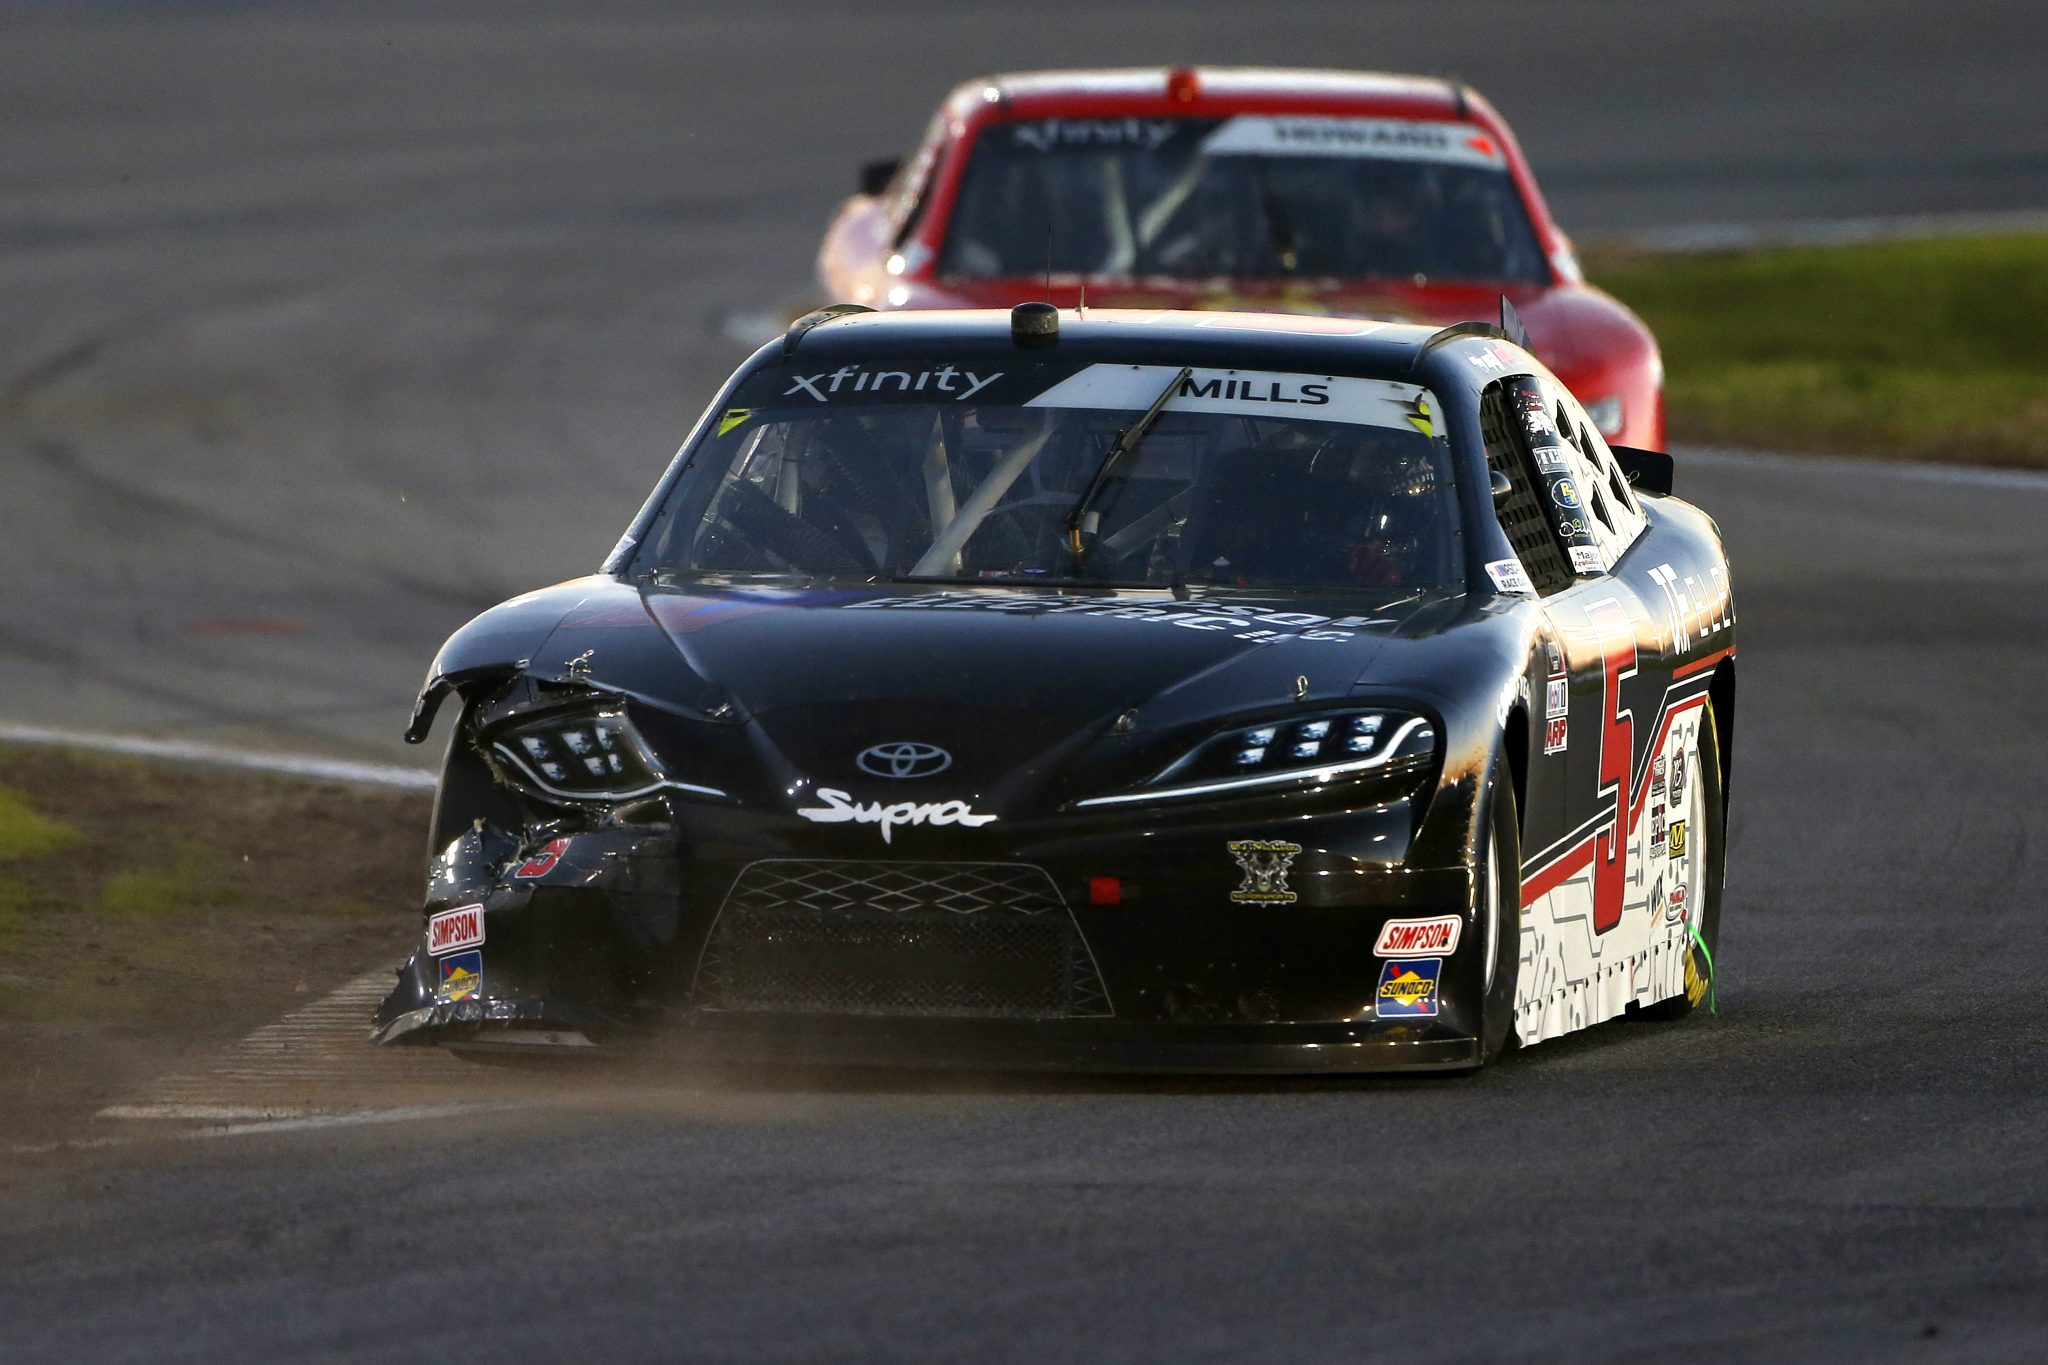 DAYTONA BEACH, FLORIDA - FEBRUARY 20: Landon Cassill, driver of the #4 Chevrolet, drives a damaged car during the NASCAR Xfinity Super Start Batteries 188 At Daytona Presented by O'Reilly at Daytona International Speedway on February 20, 2021 in Daytona Beach, Florida. (Photo by Brian Lawdermilk/Getty Images) | Getty Images